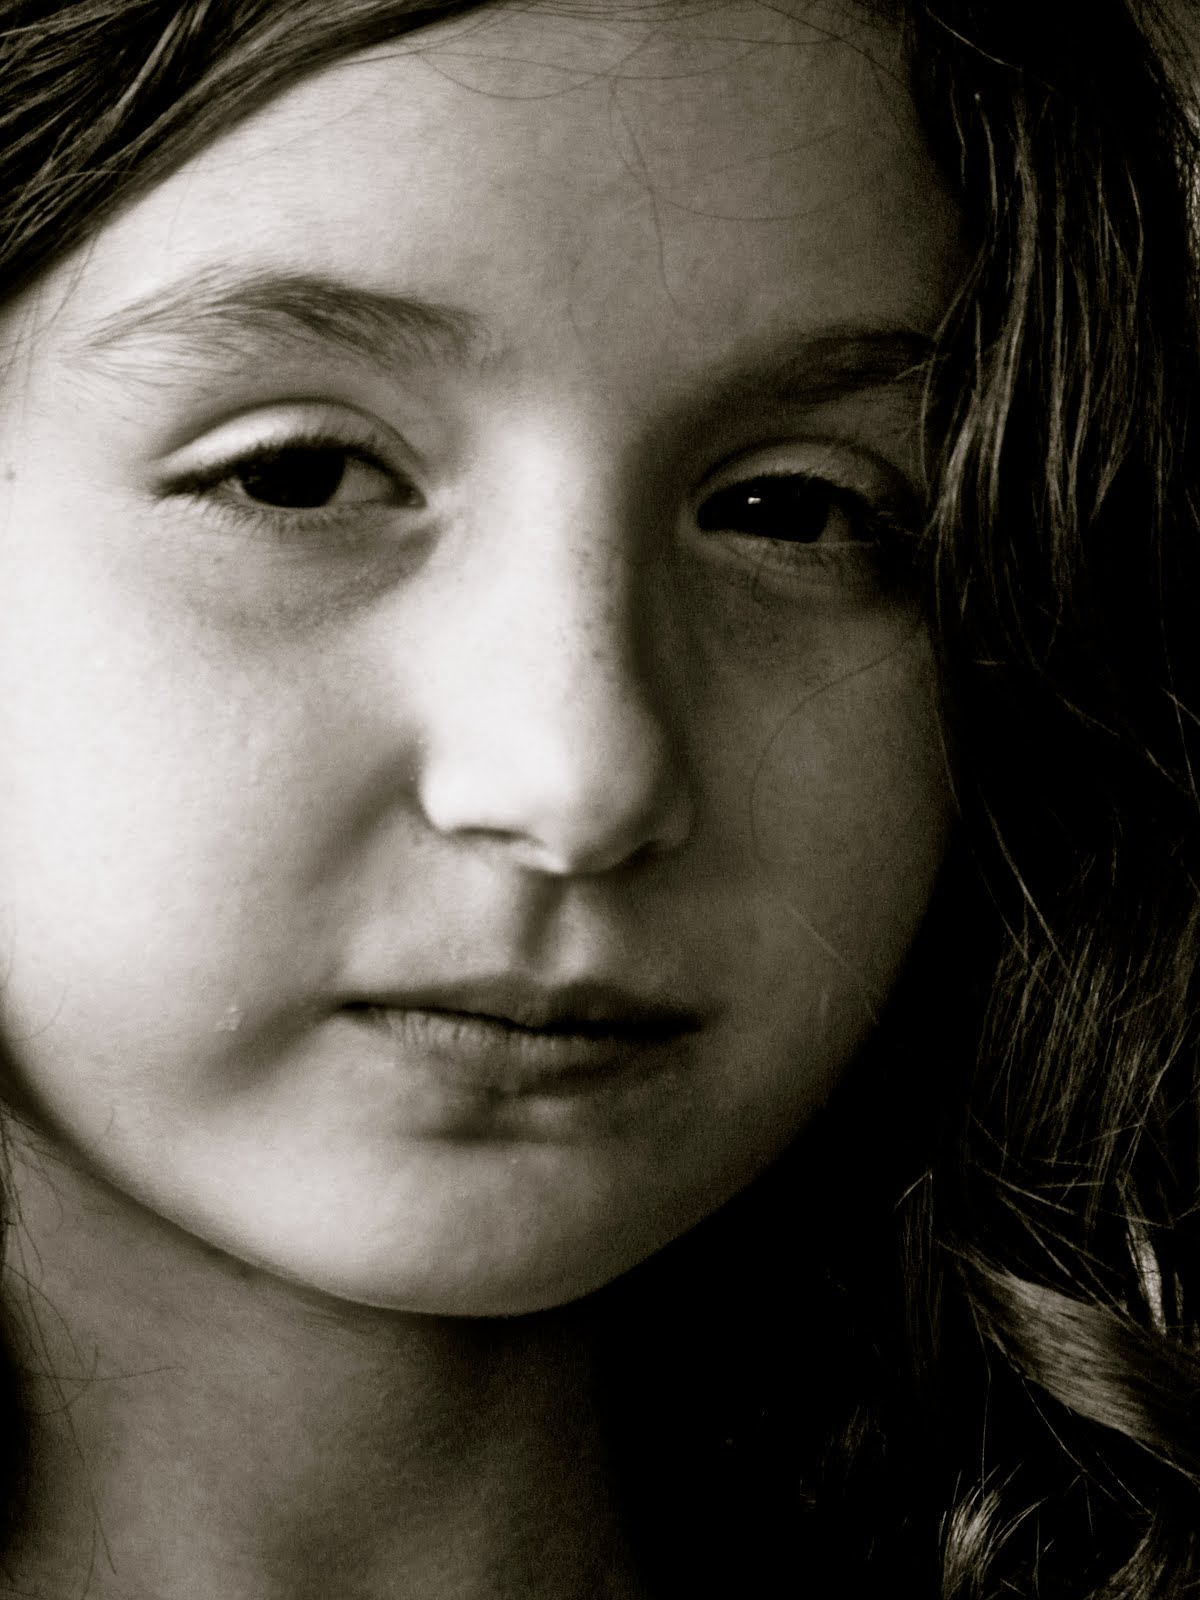 ... HAVE BEEN LOST: the most beautiful children on the face of this planet